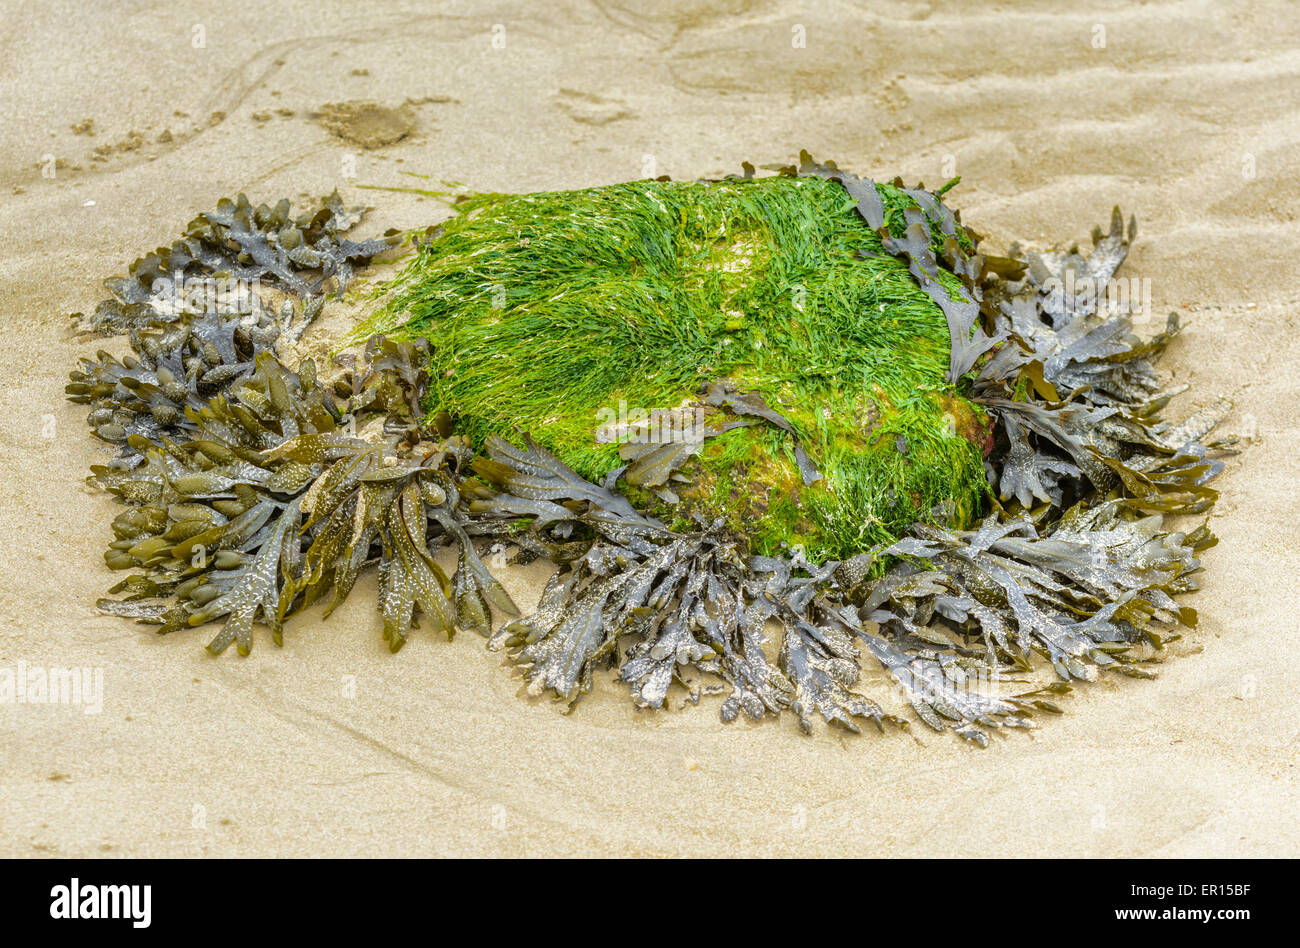 Rock covered in algae and seaweed on a sandy beach. - Stock Image